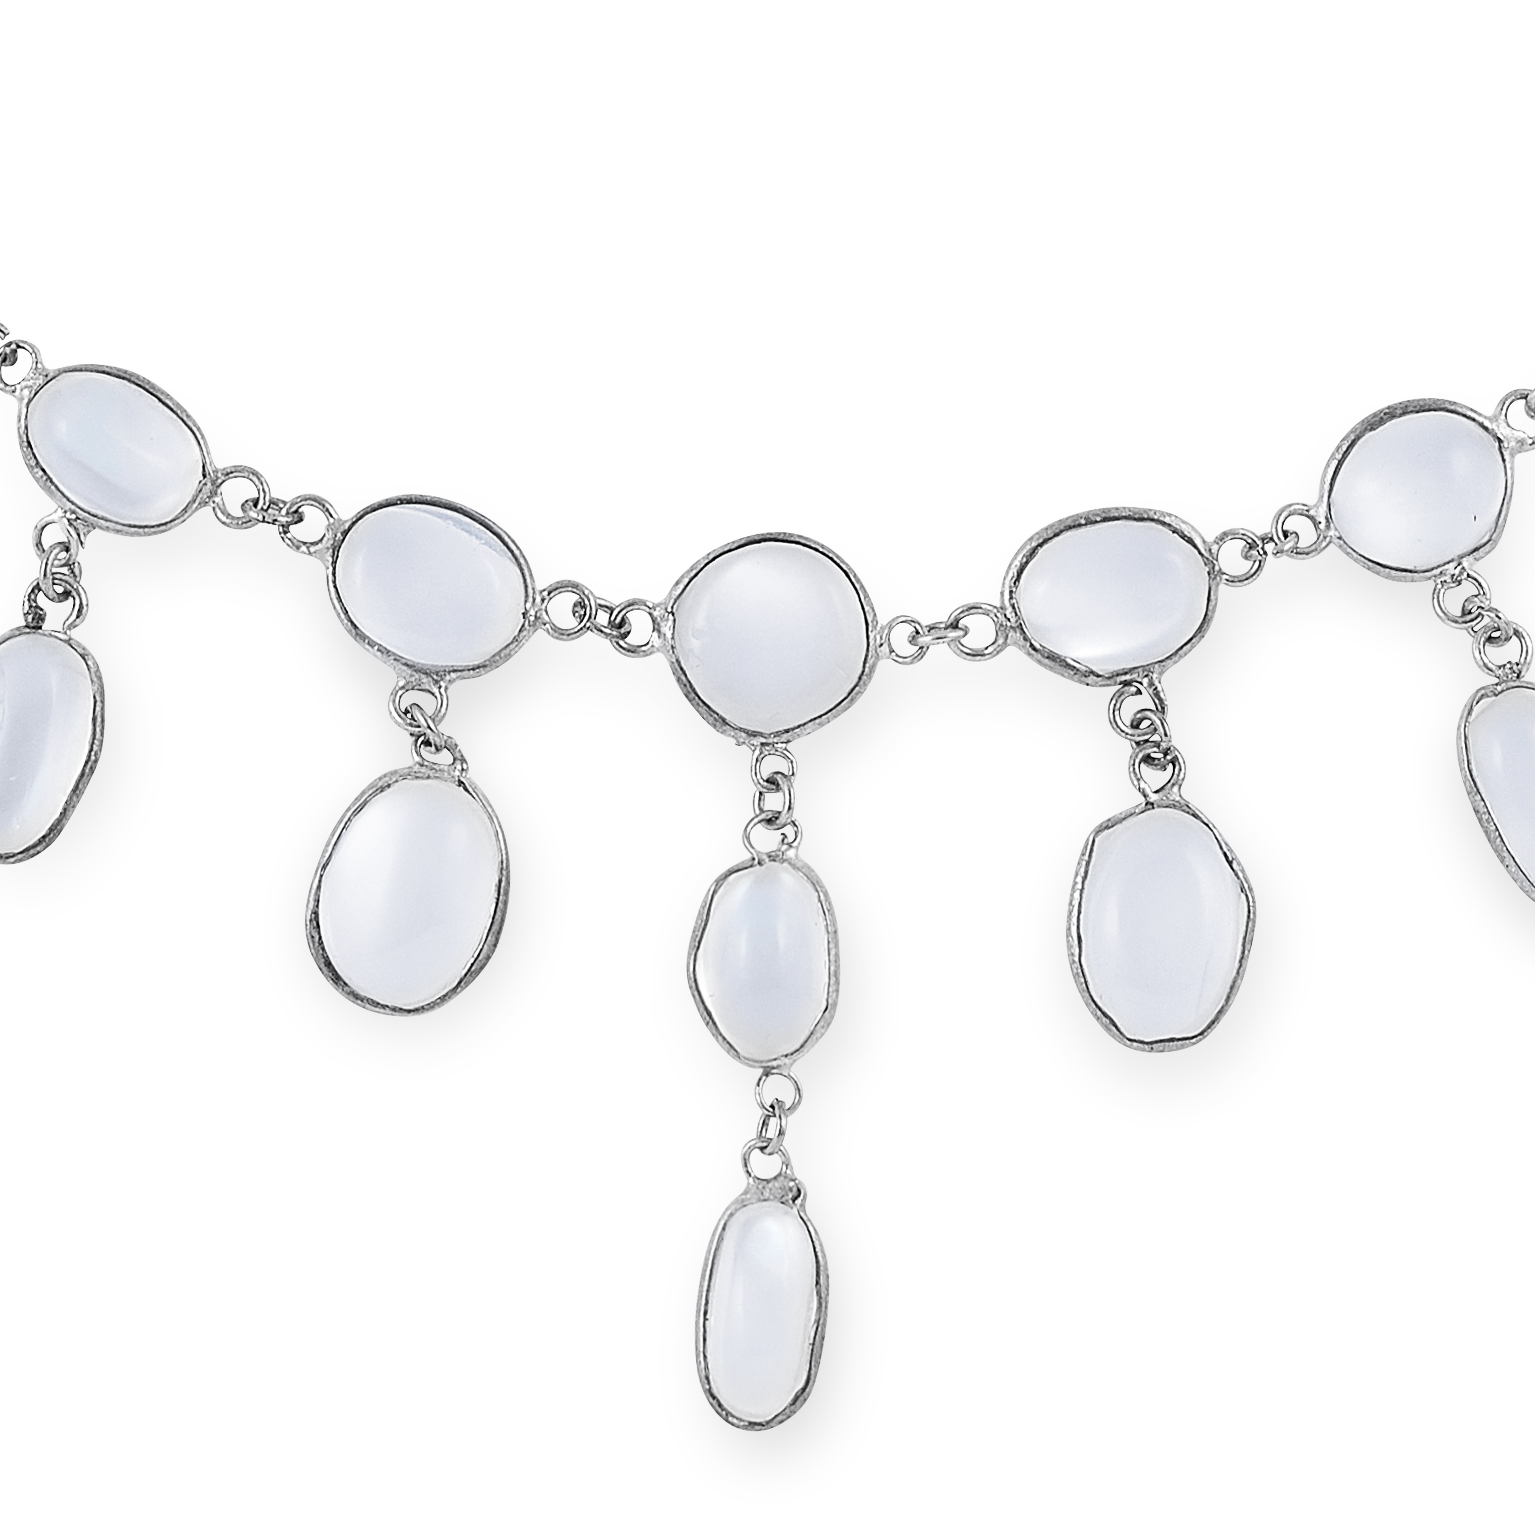 MOONSTONE NECKLACE set with cabochon moonstones, 48cm, 7.5g. - Image 2 of 2